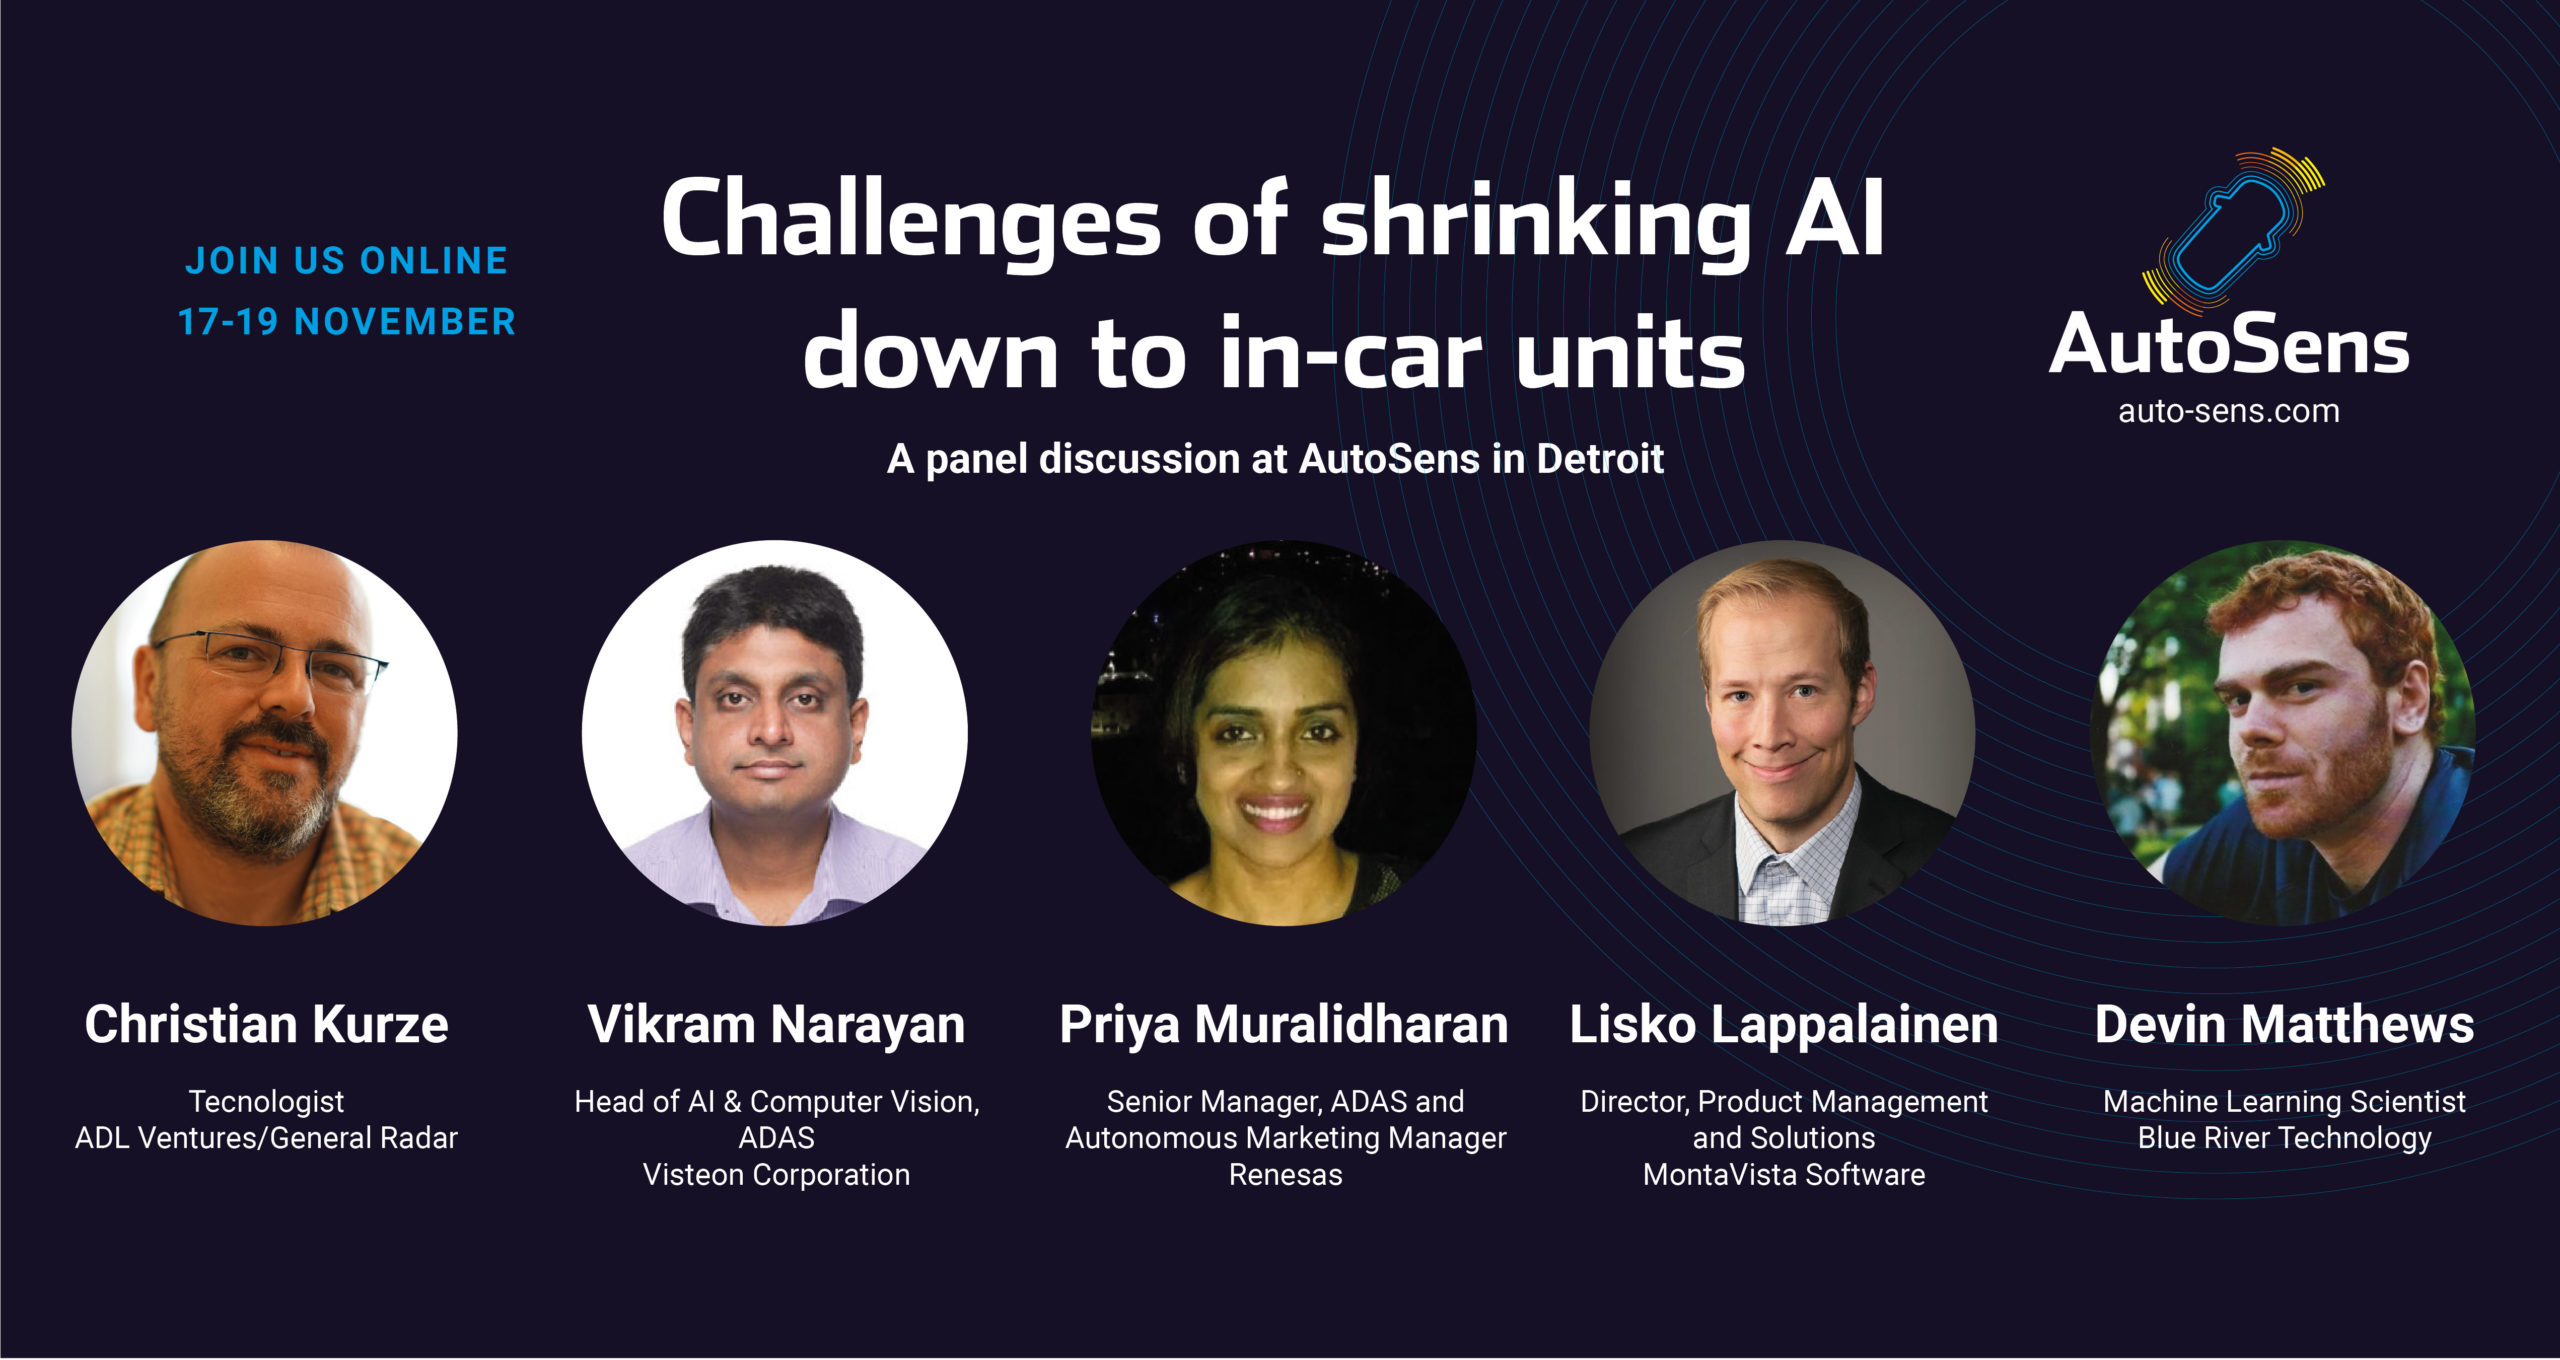 Panel discussion: Challenges of shrinking AI down to in-car units